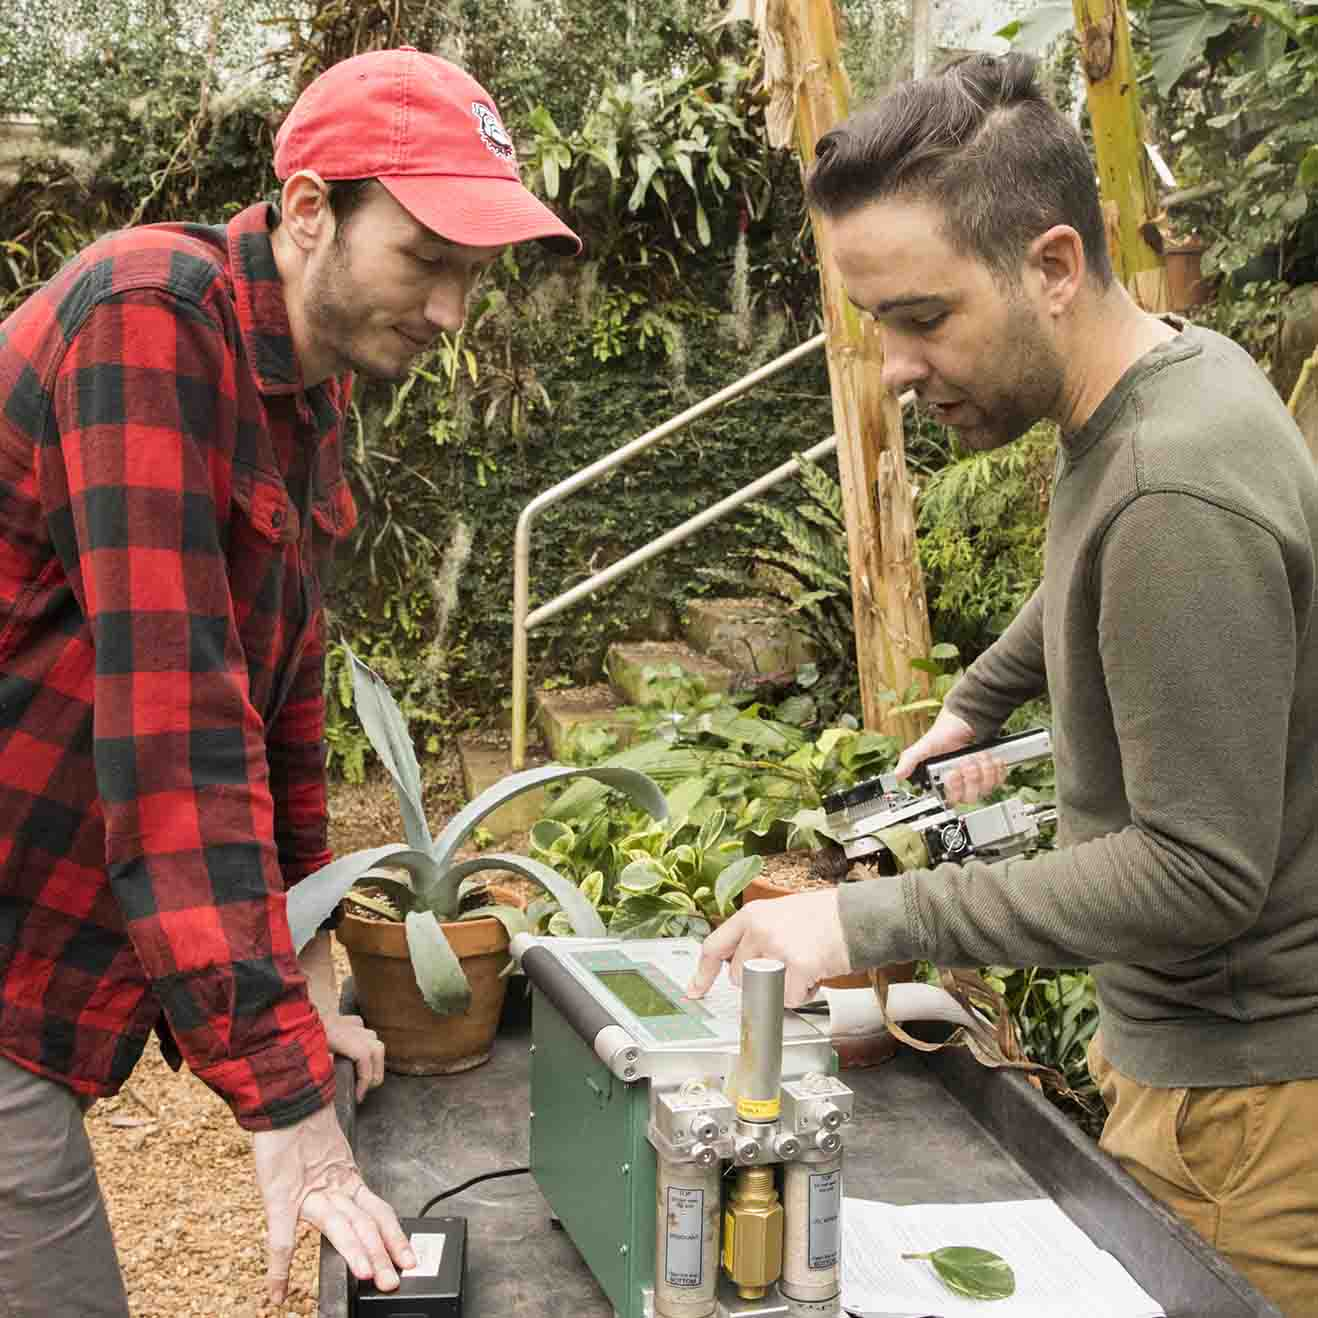 Graduate student Philip Bentz (left) and graduate student Rick Field (right) use a carbon dioxide sensor on a plant in the horticulture greenhouses. Bentz enrolled to UGA in the Integrated Plant Sciences program in 2019. (photo by Dorothy Kozlowski, taken prior to March 2020)